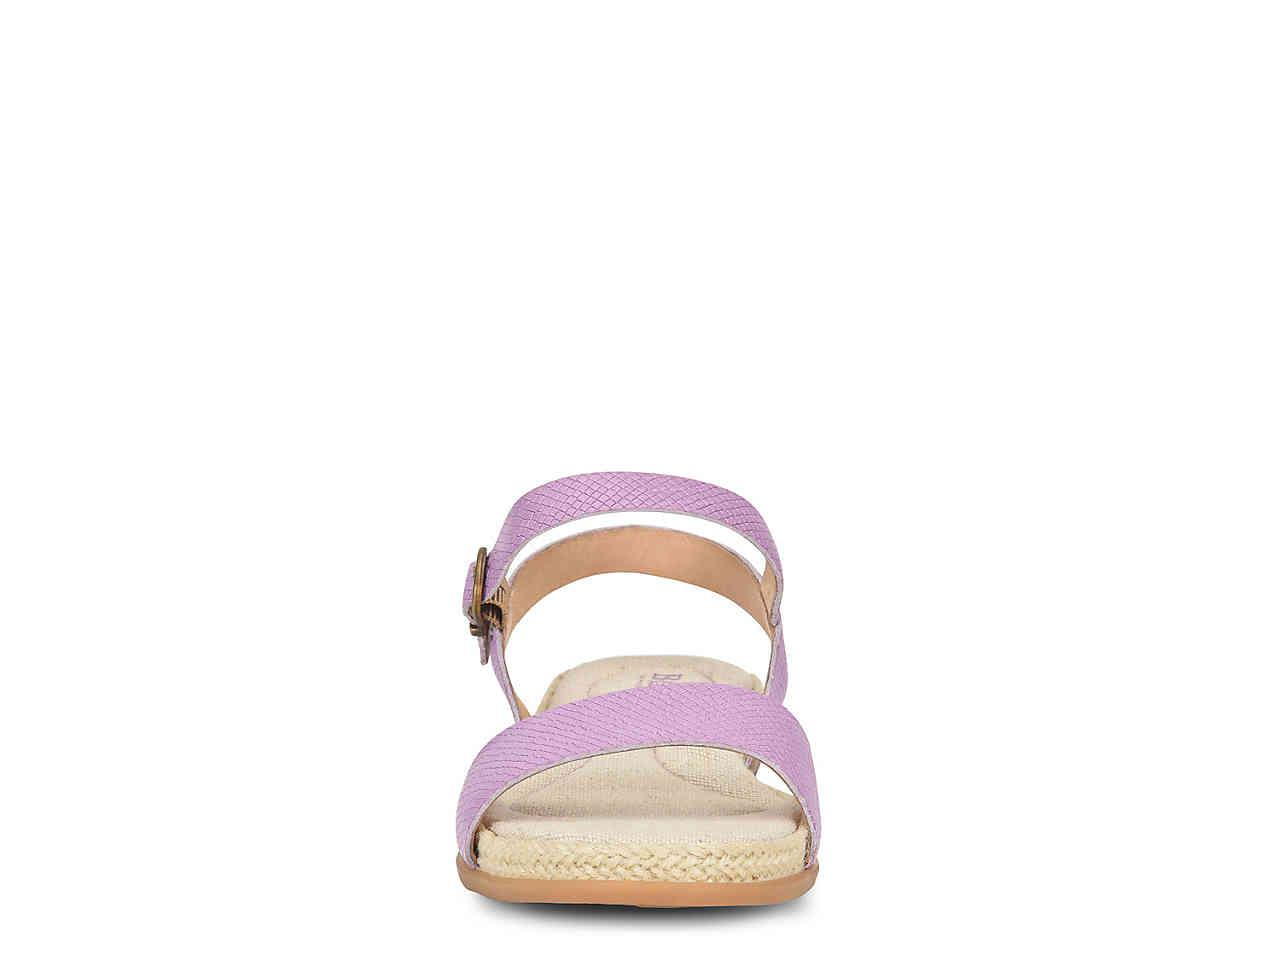 9f9862dbc6f8 Born - Multicolor Welch Espadrille Sandal - Lyst. View fullscreen